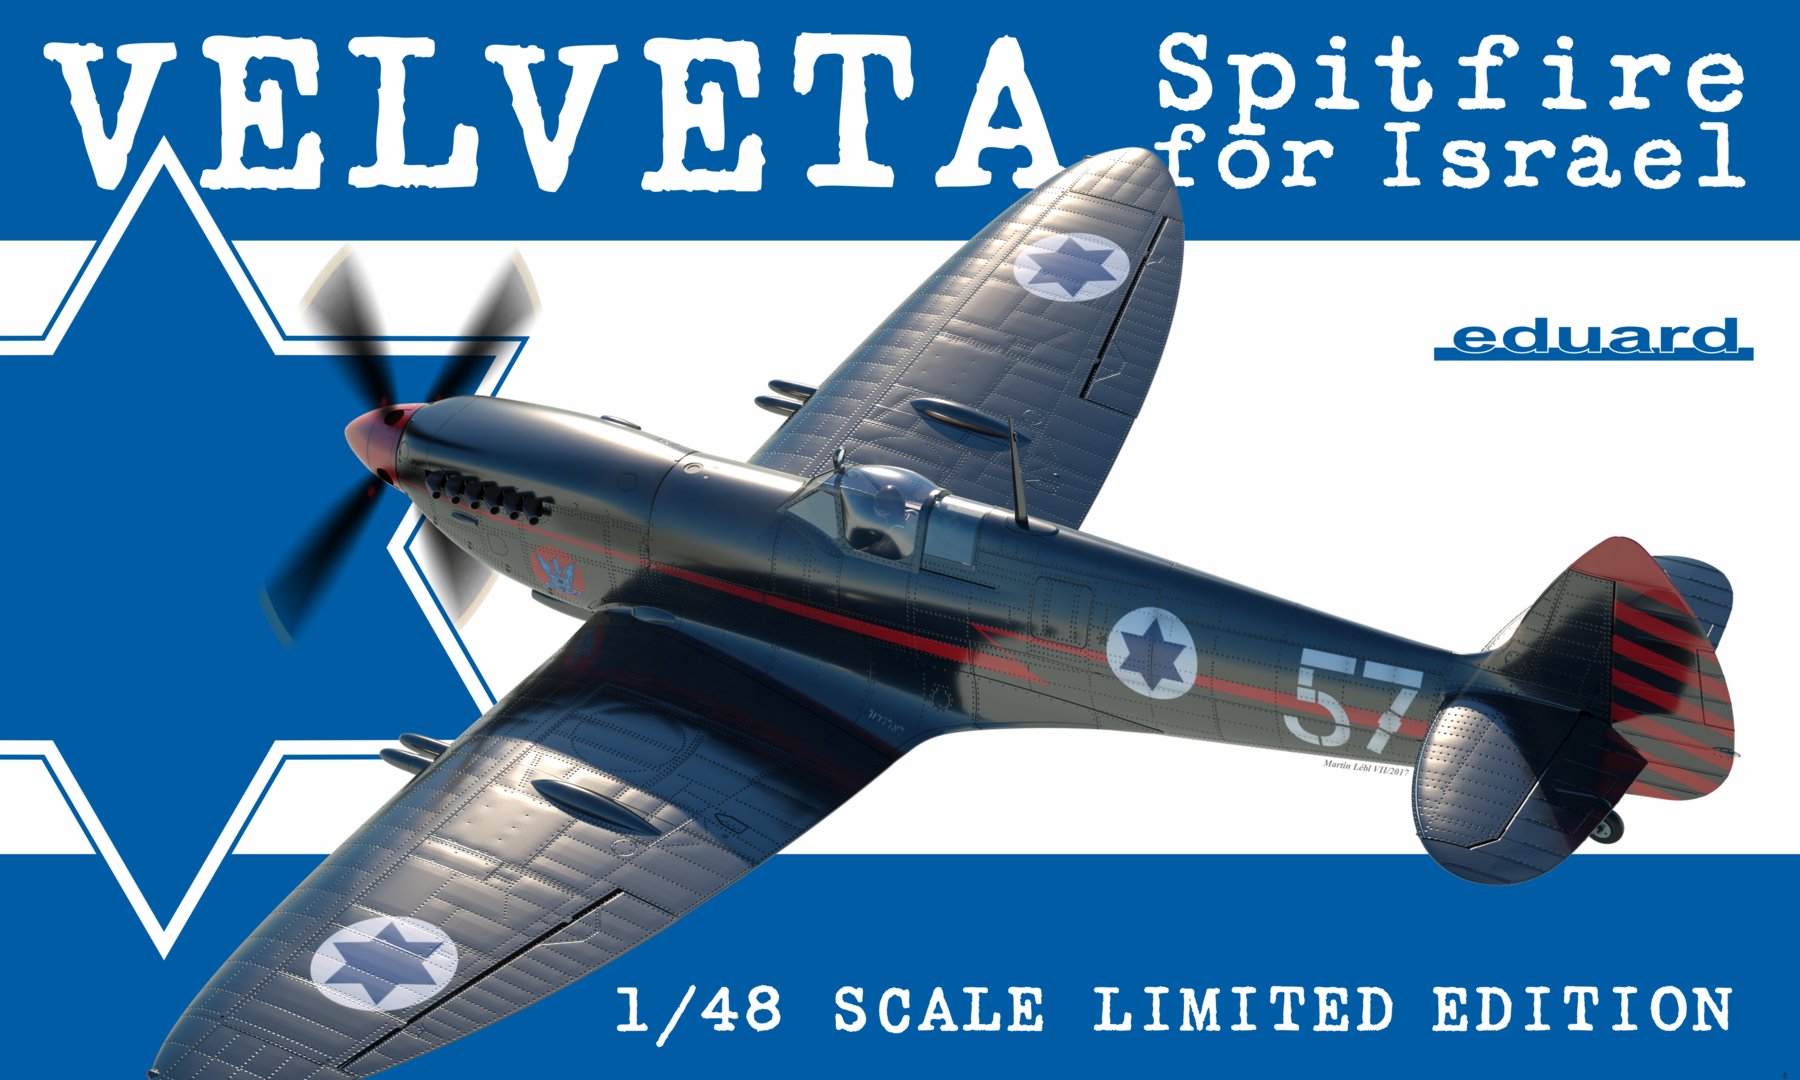 Eduard Aircraft 1/48 Velveta/Spitfire Israel Fighter EduArt Ltd. Edition Kit